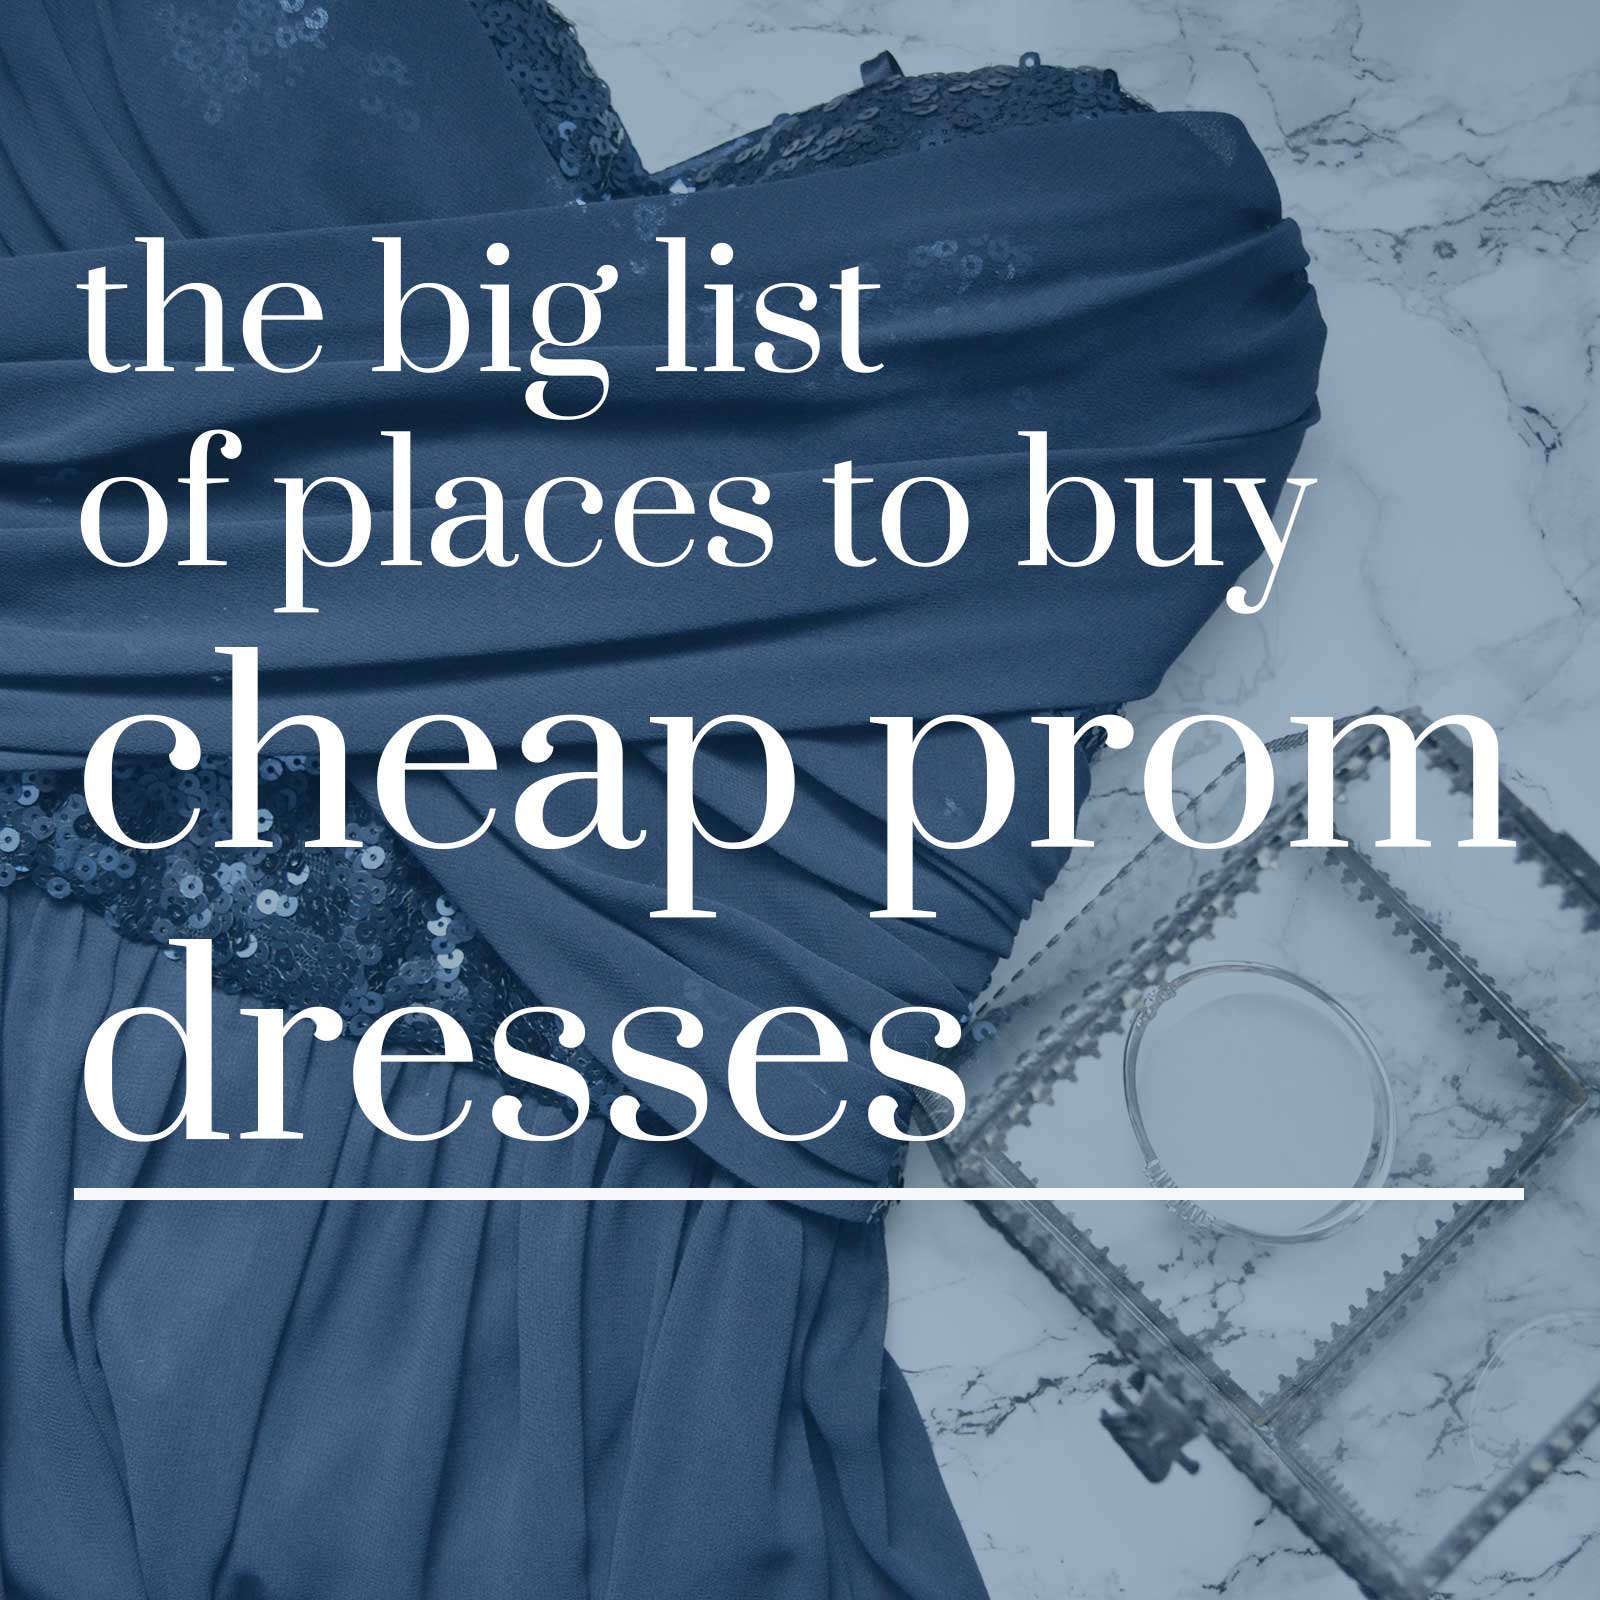 The Big List of Places to Buy Cheap Prom Dresses